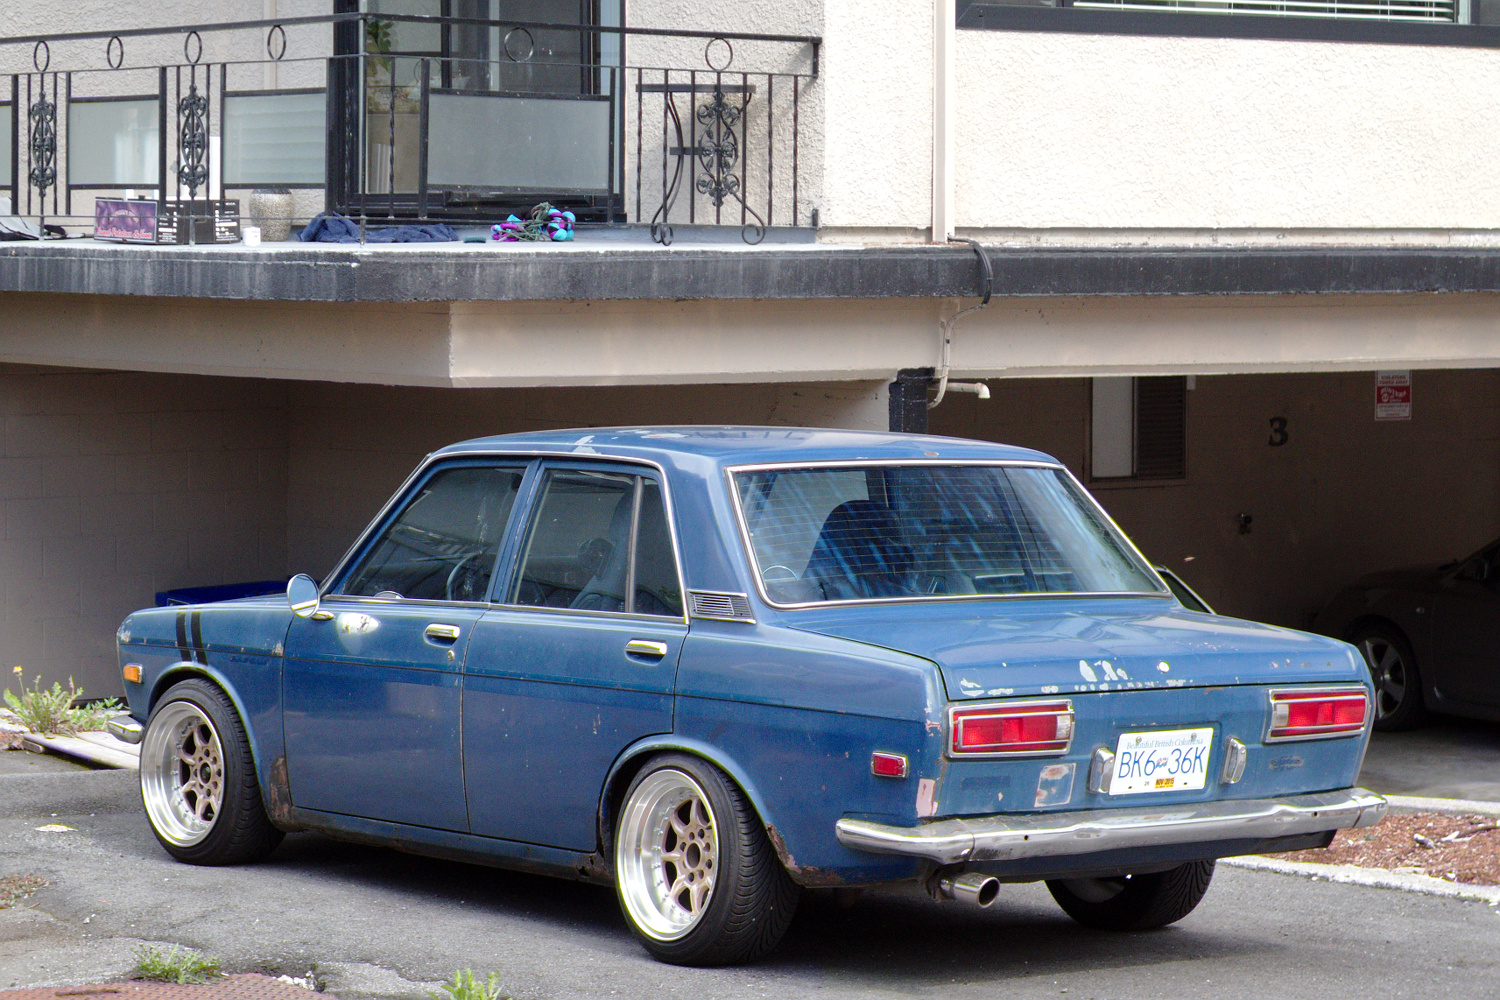 Nissan March Tuning >> Old Parked Cars Vancouver: 1969 Datsun 510 Sedan